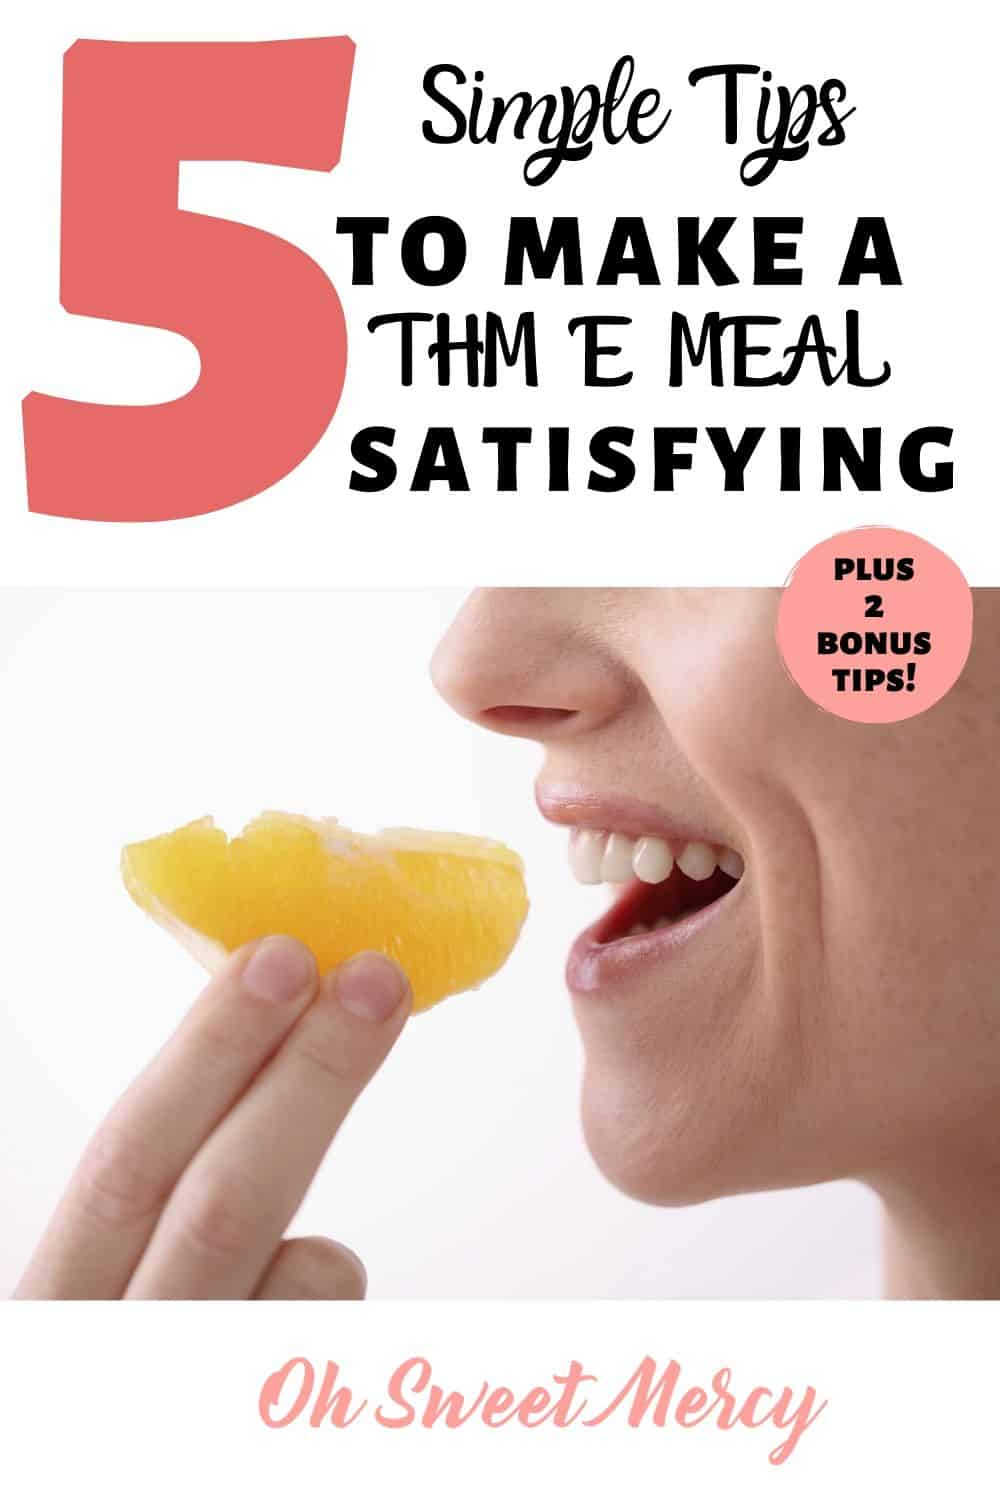 Try these 5 simple tips to make your THM E meal satisfying (plus 2 BONUS tips!). #thm #emeals #lowfat #healthycarb #tips